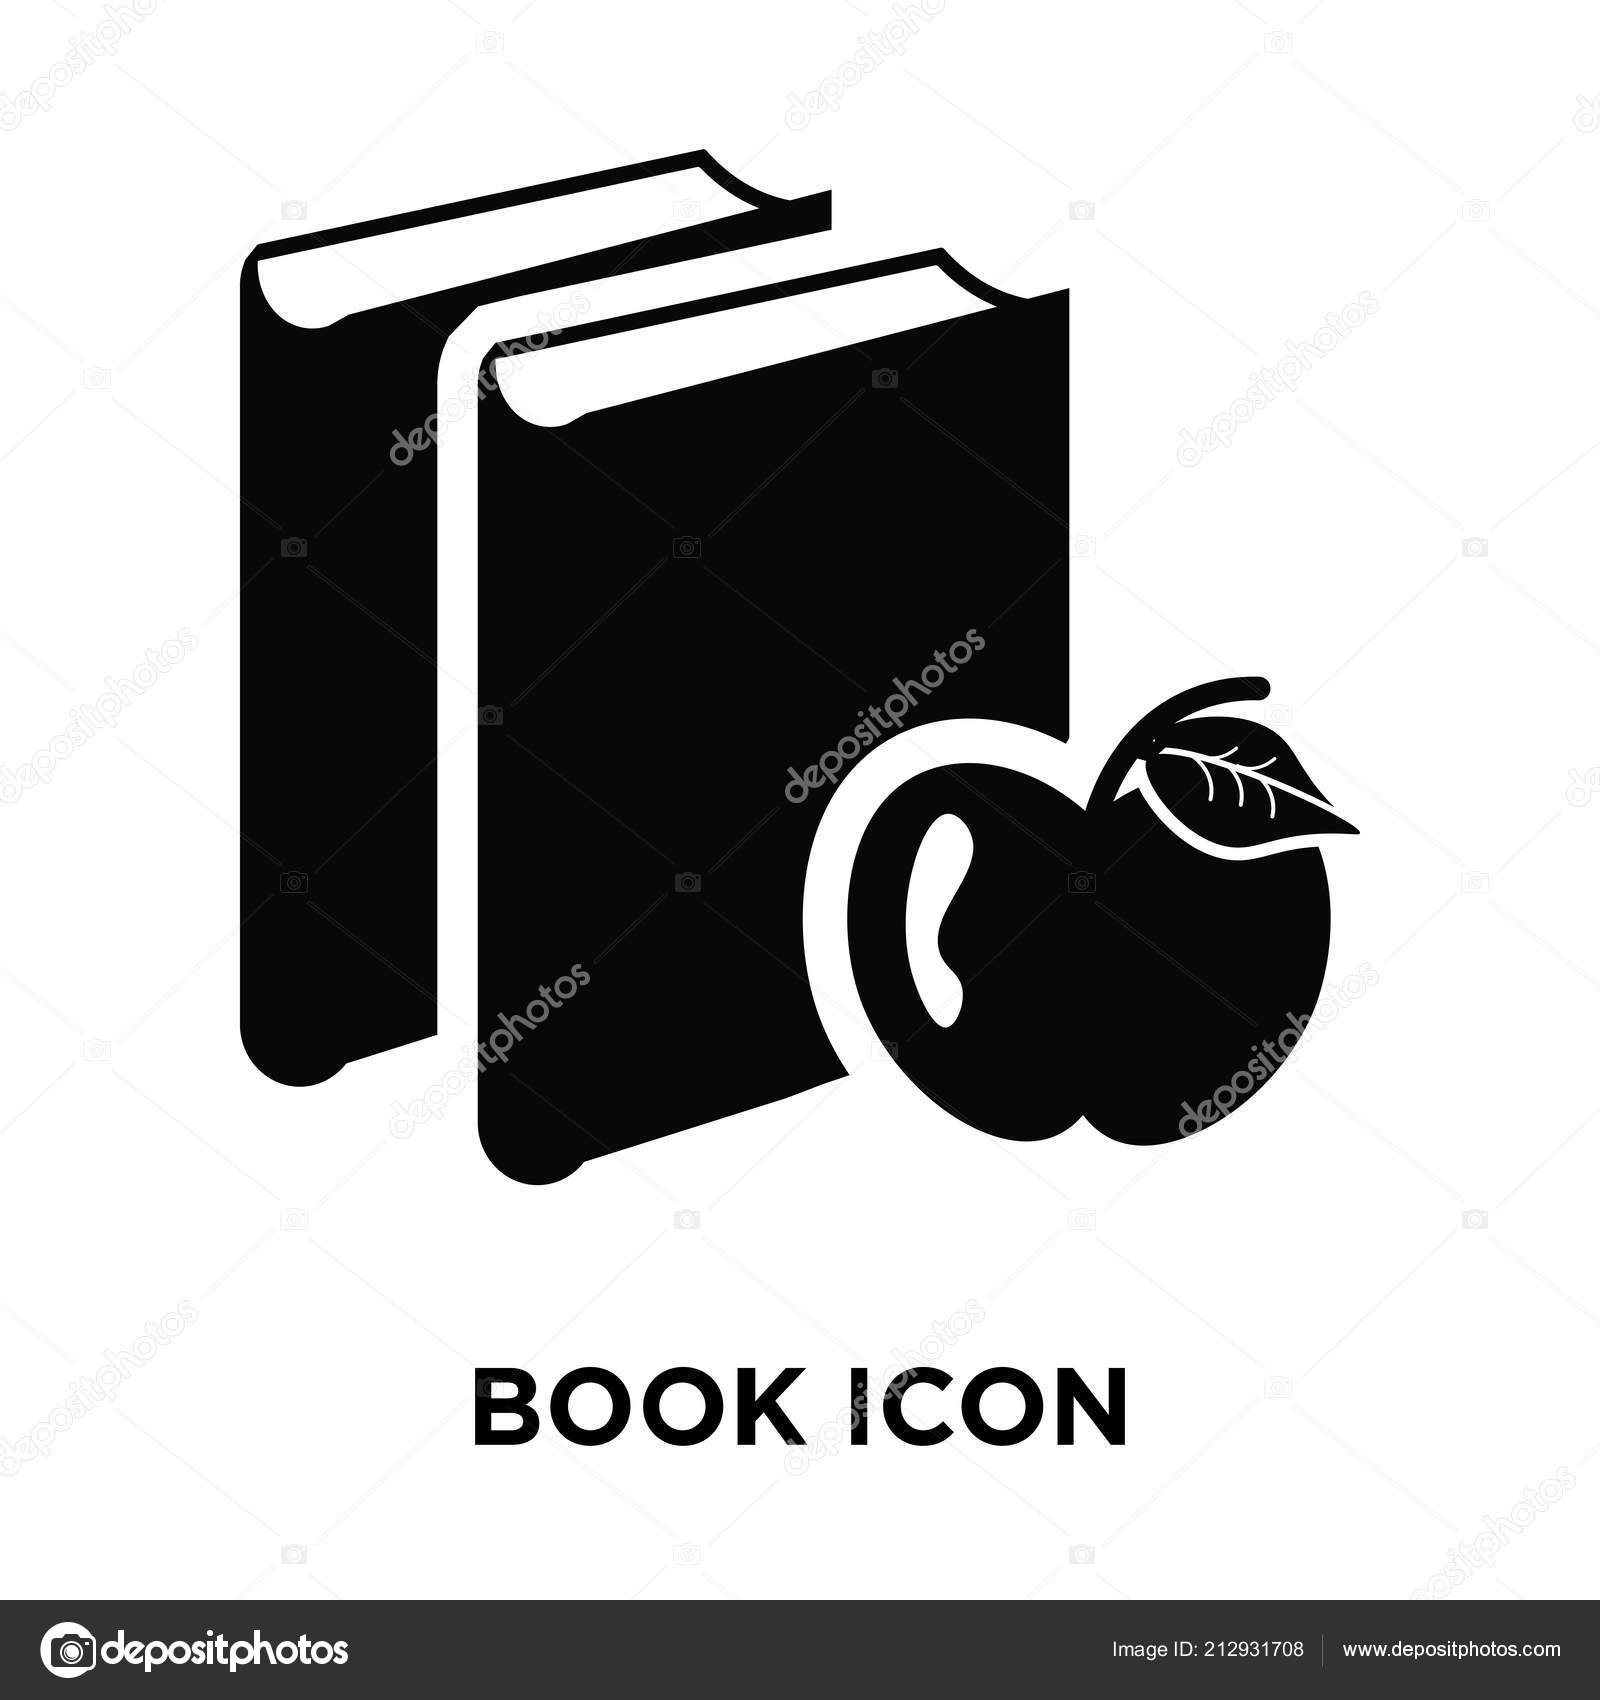 Book Icon Vector Isolated On White Background Logo Concept Of Sign Transparent Filled Black Symbol By Eljanstock